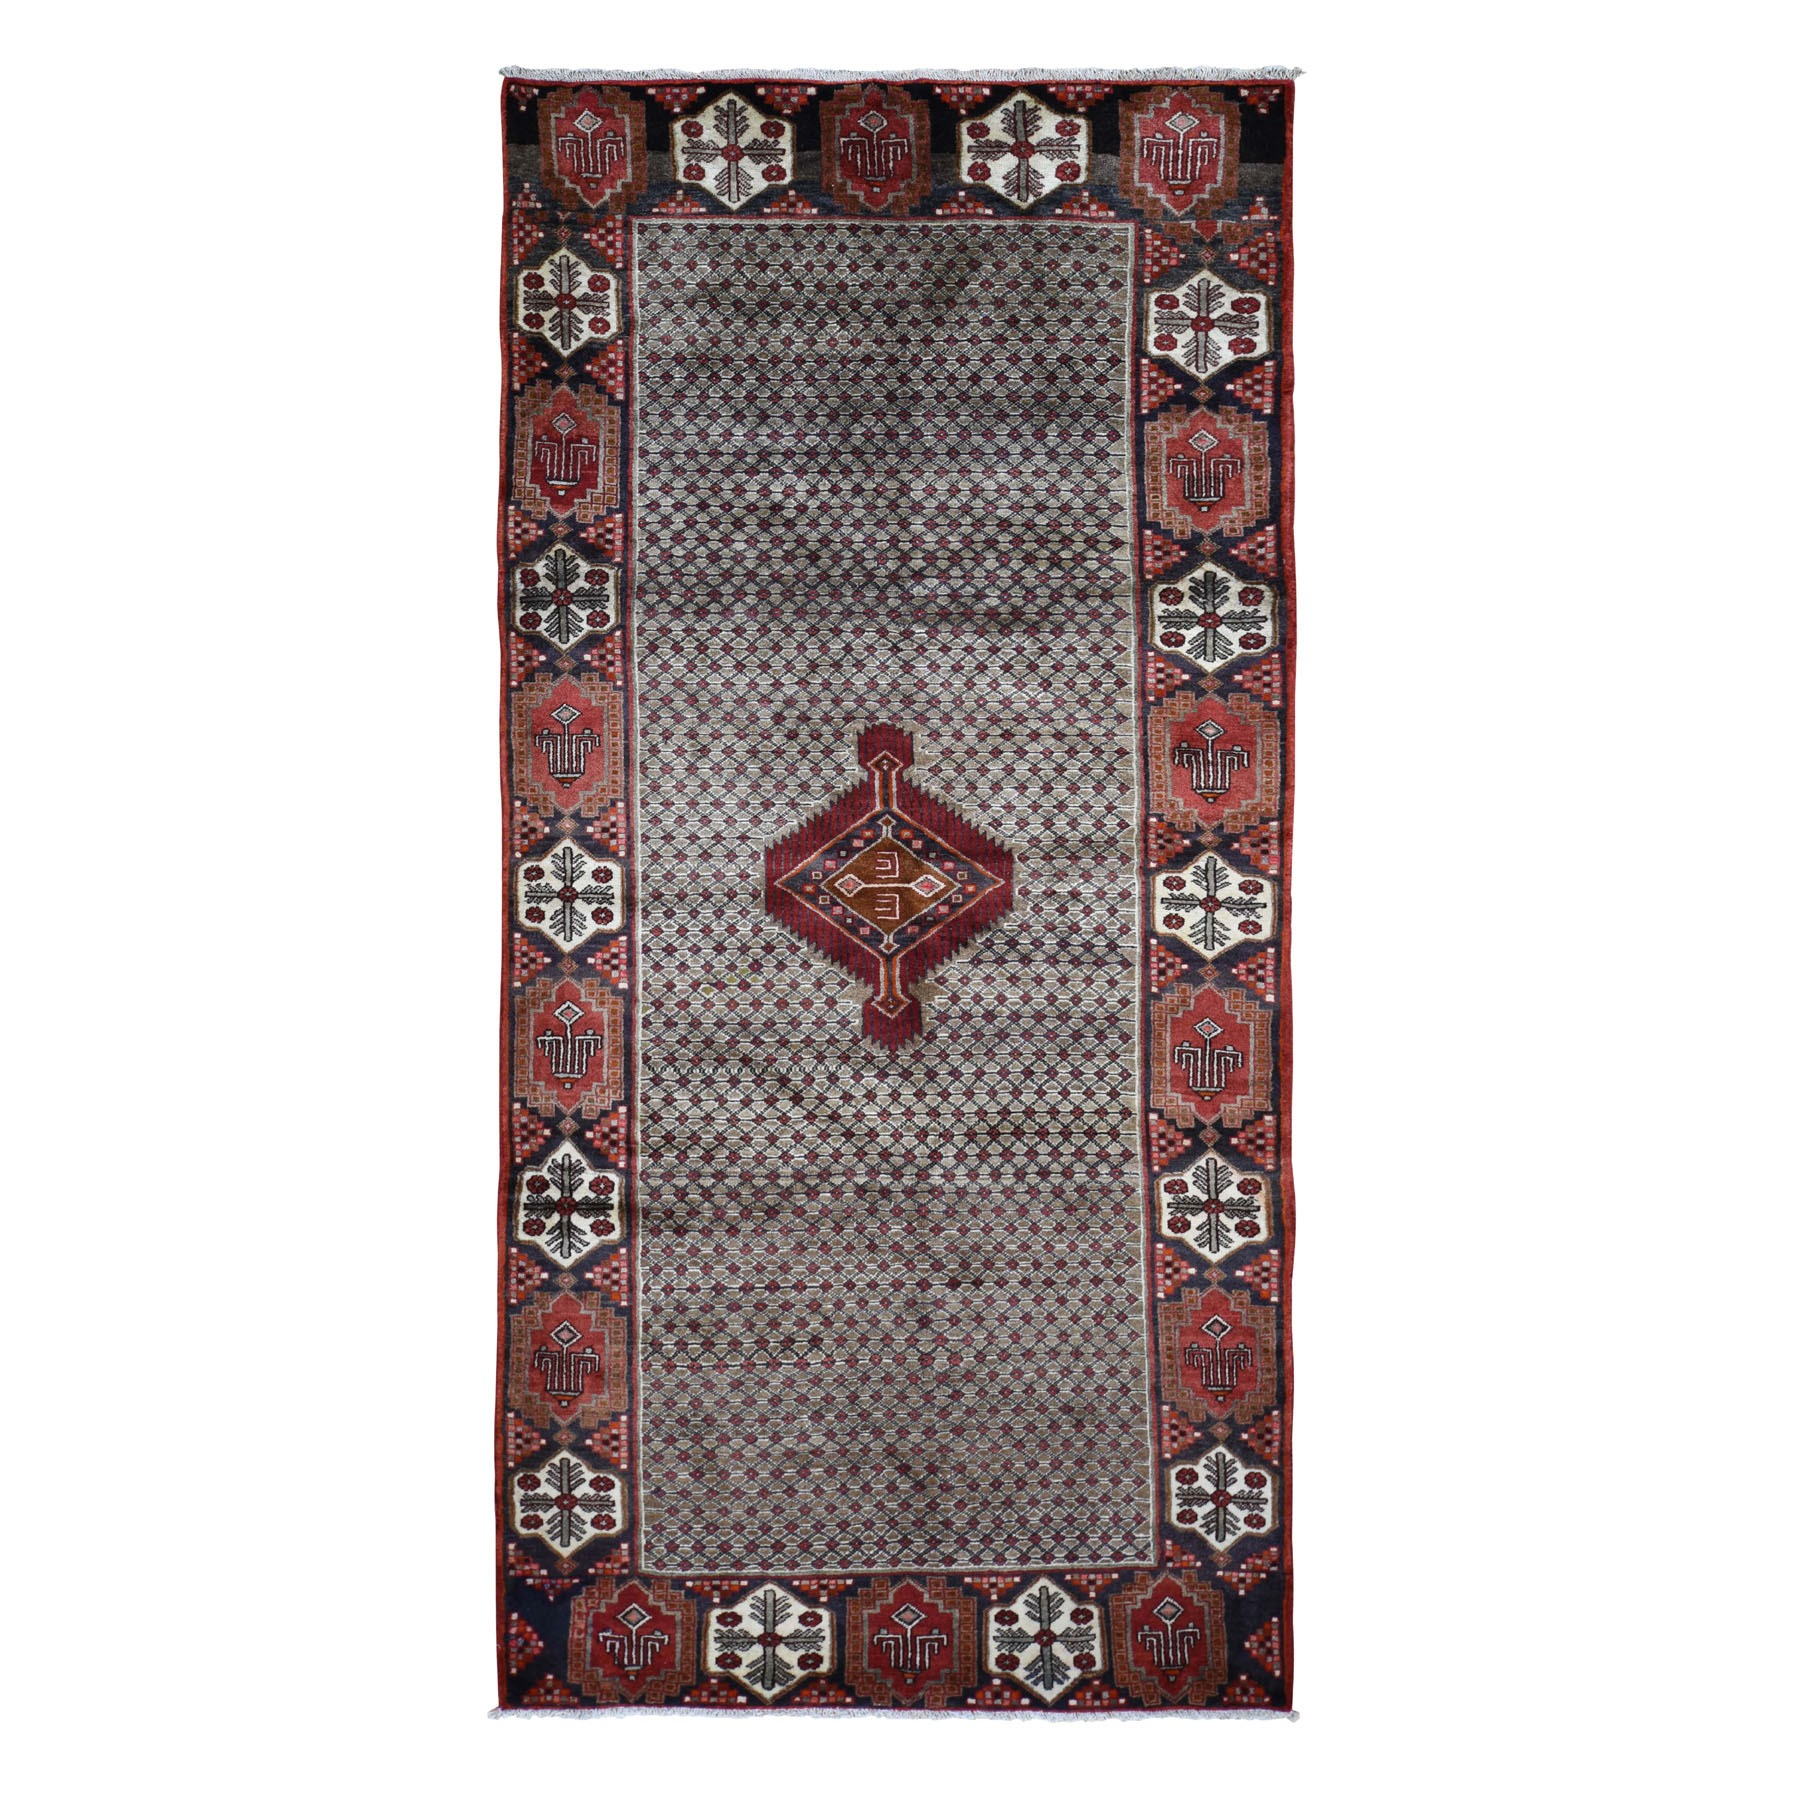 5'X11' Gallery Size New Persian Serab Pure Wool Camel Hair Hand Knotted Oriental Rug moad9ade